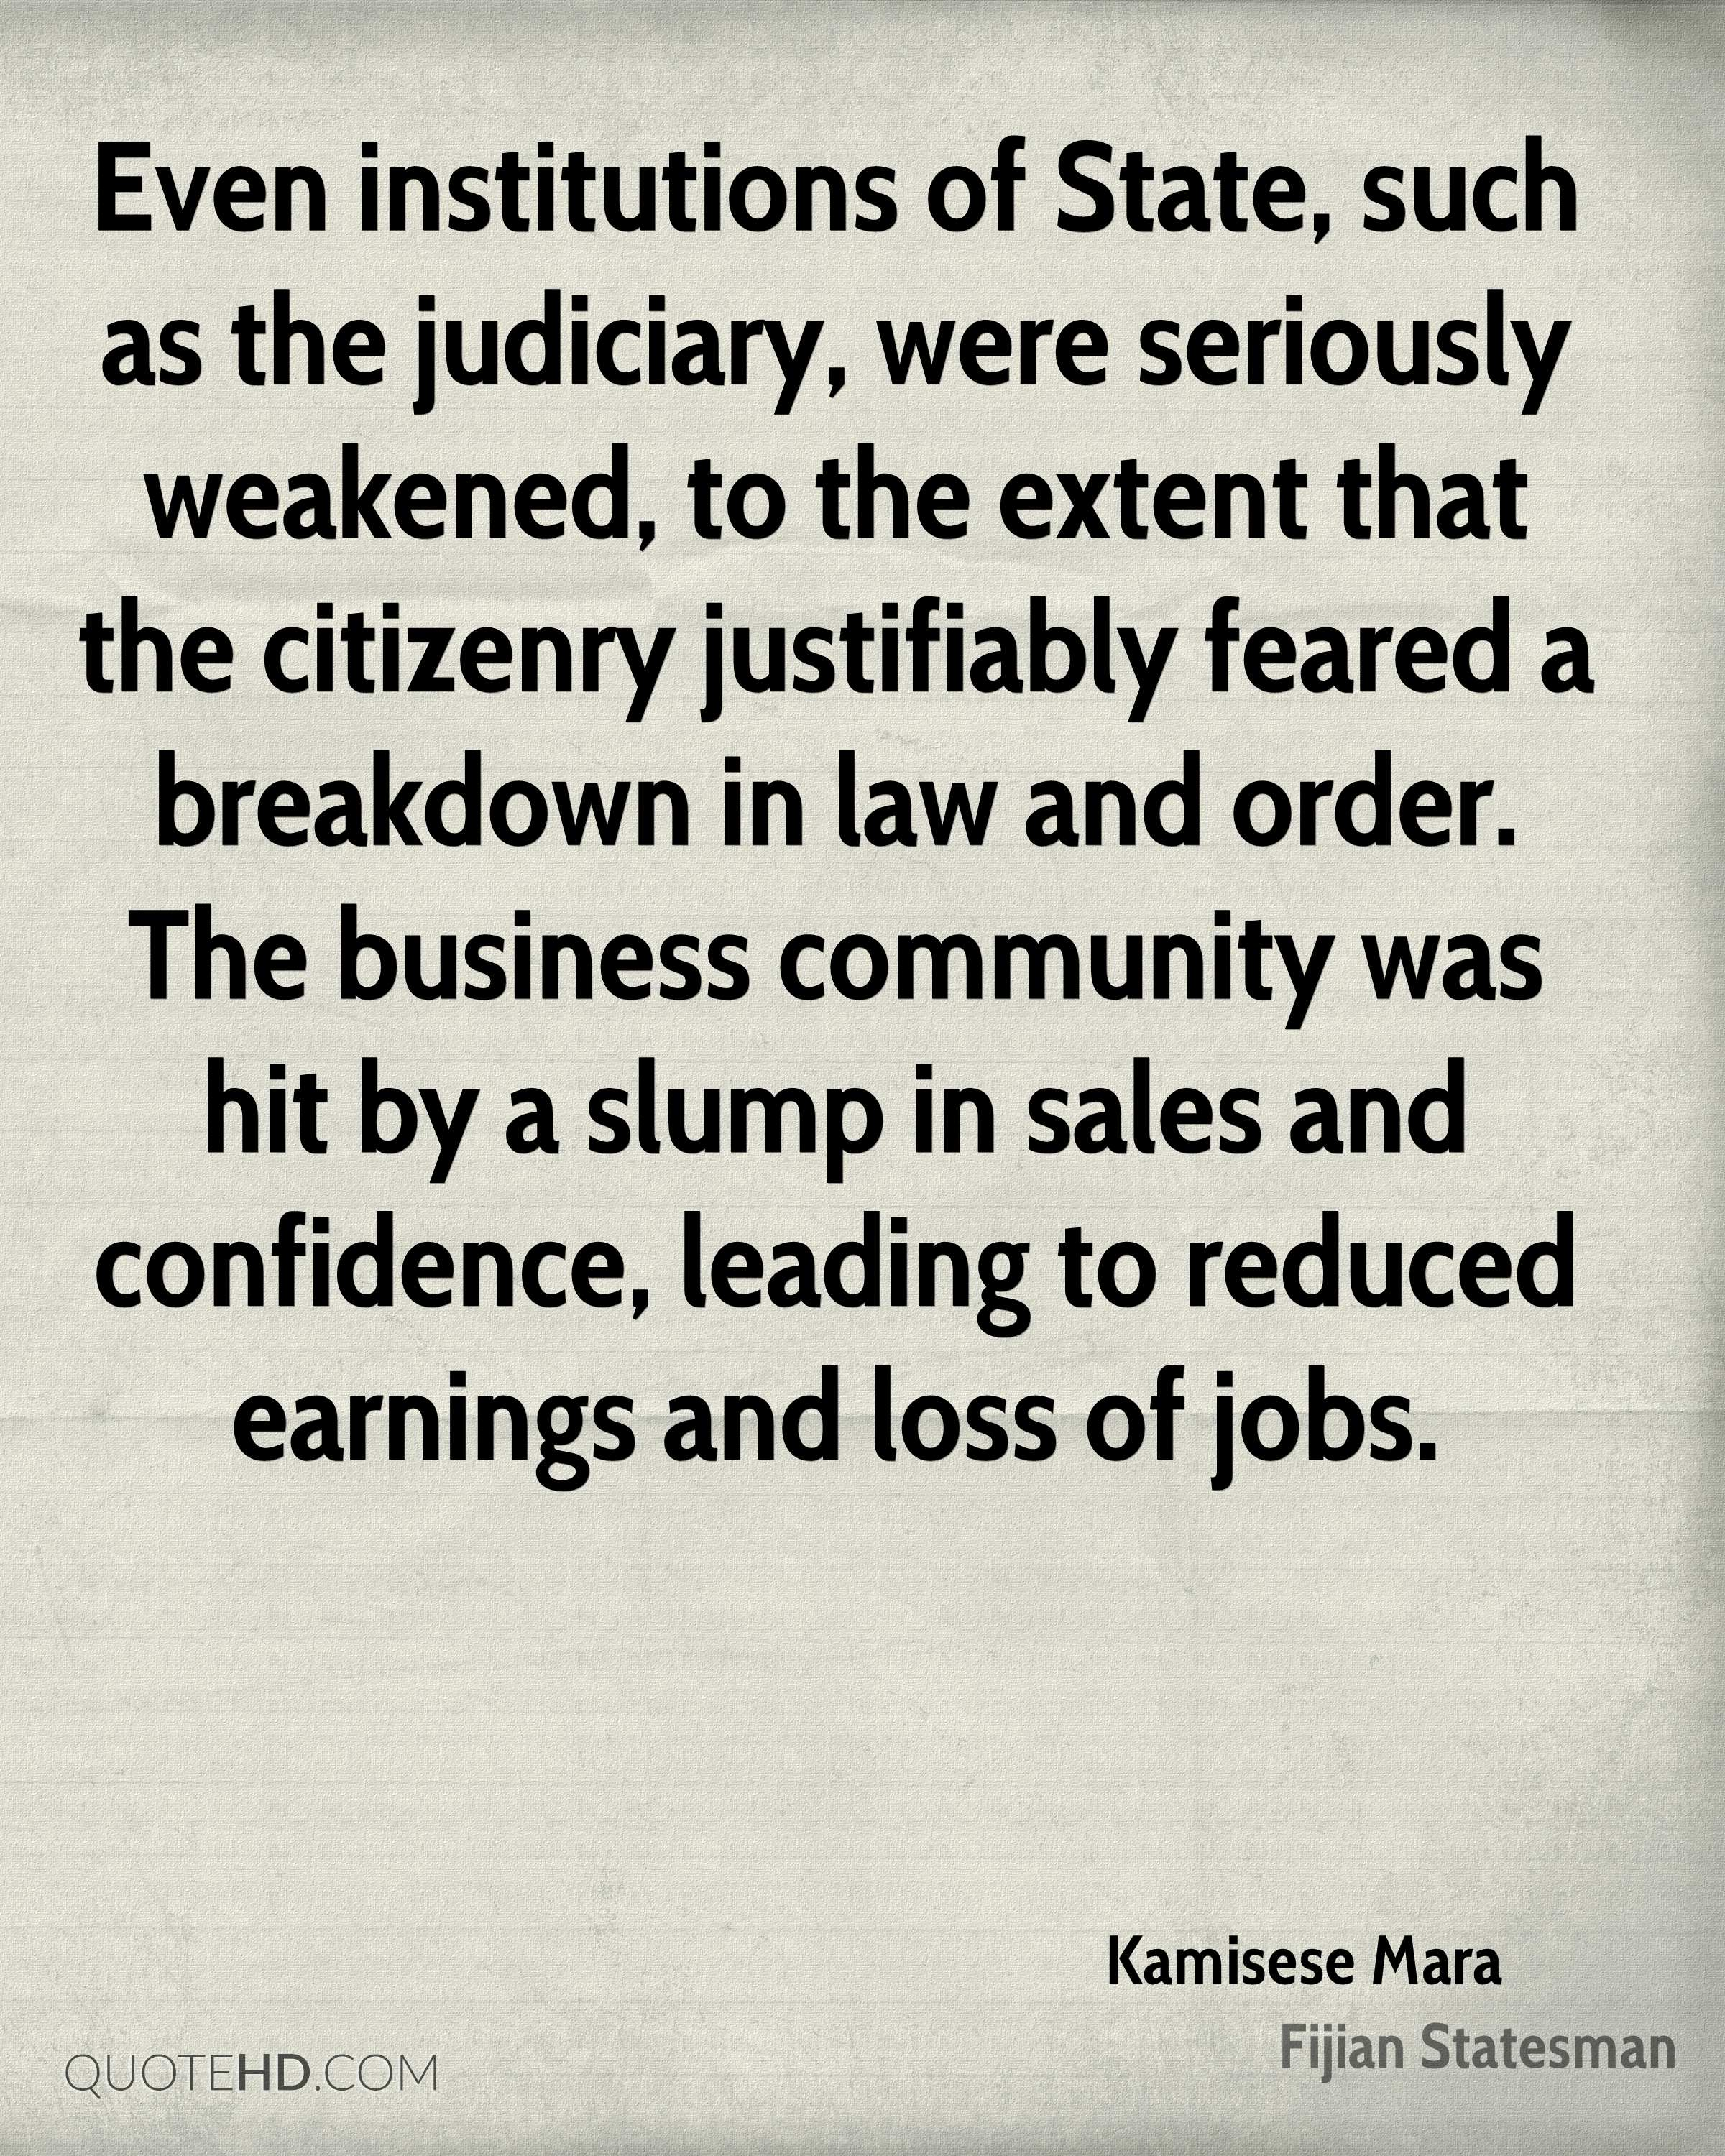 Even institutions of State, such as the judiciary, were seriously weakened, to the extent that the citizenry justifiably feared a breakdown in law and order. The business community was hit by a slump in sales and confidence, leading to reduced earnings and loss of jobs.